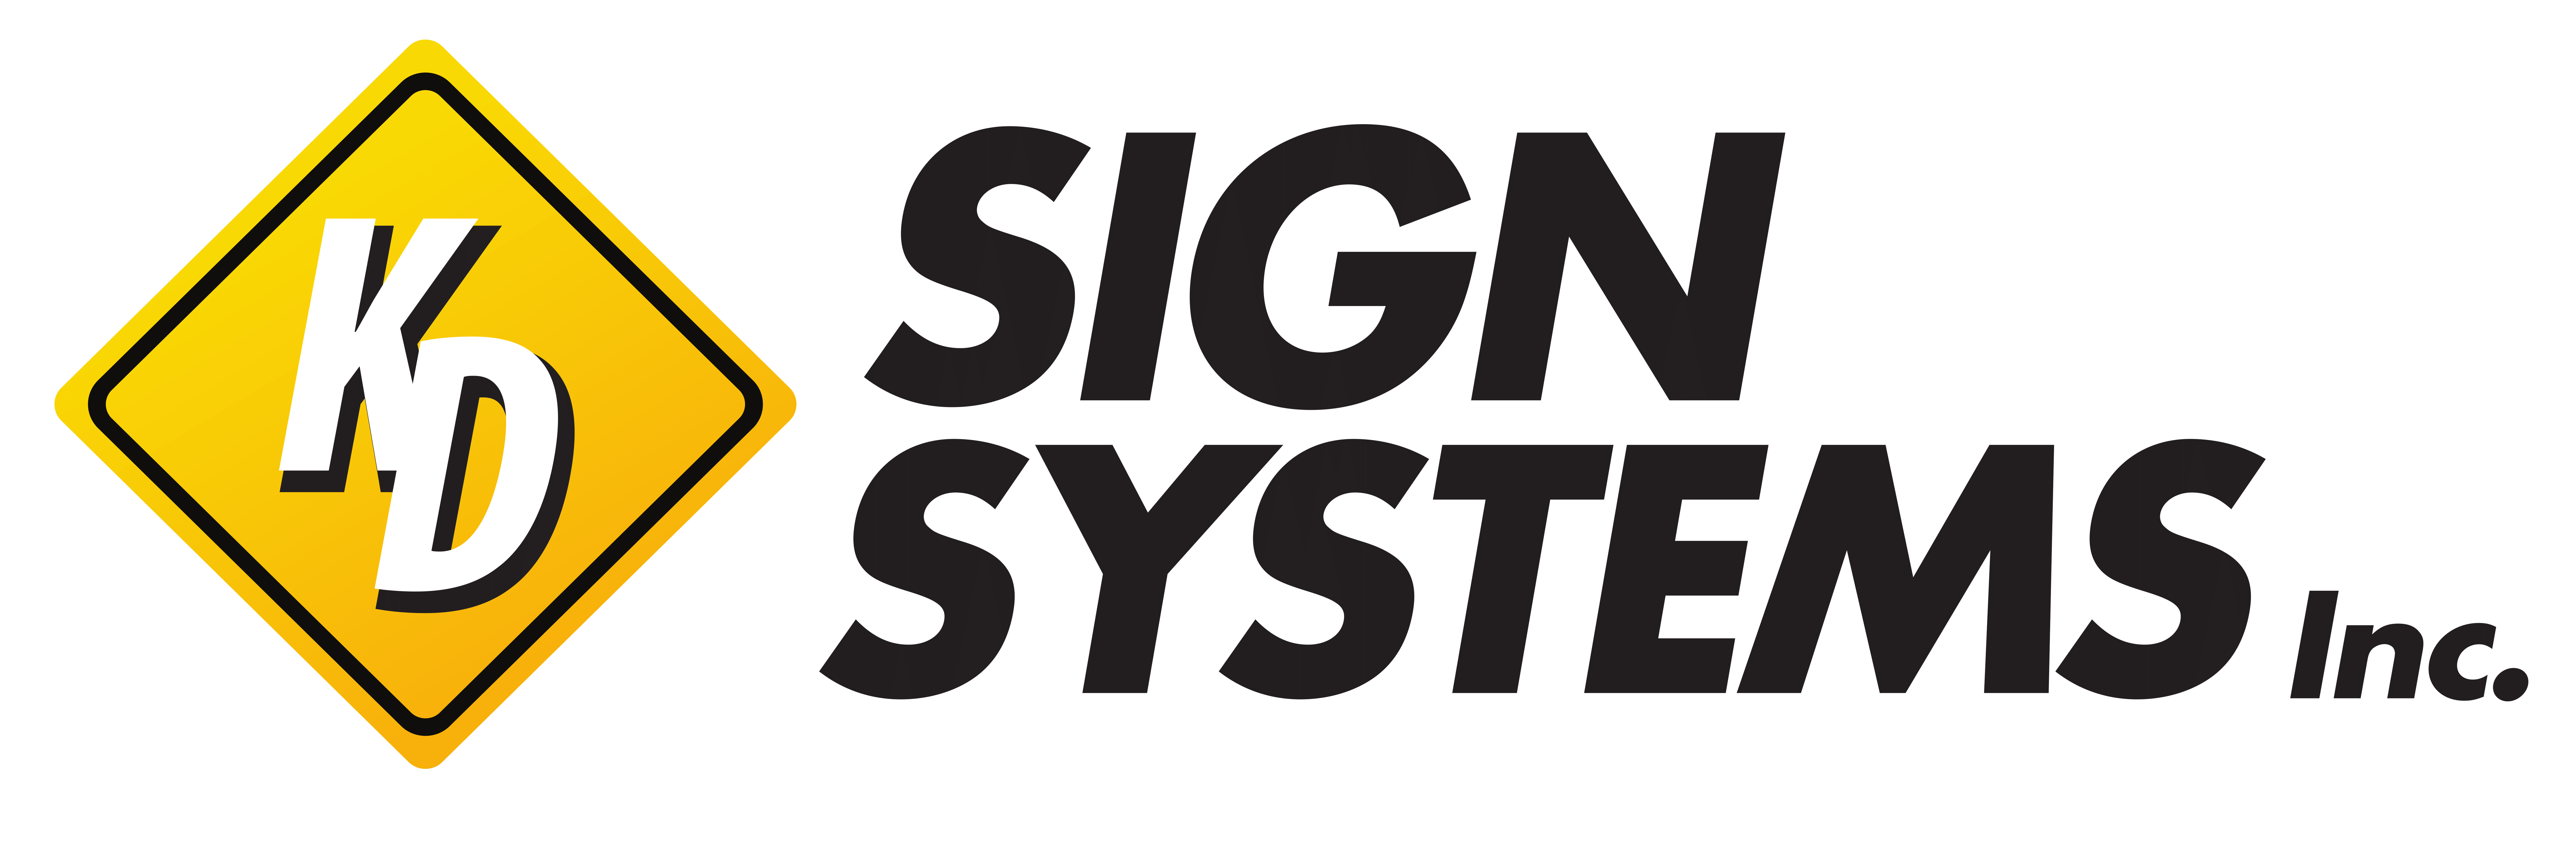 Thank You to Our Team Sponsor at KD Sign Systems